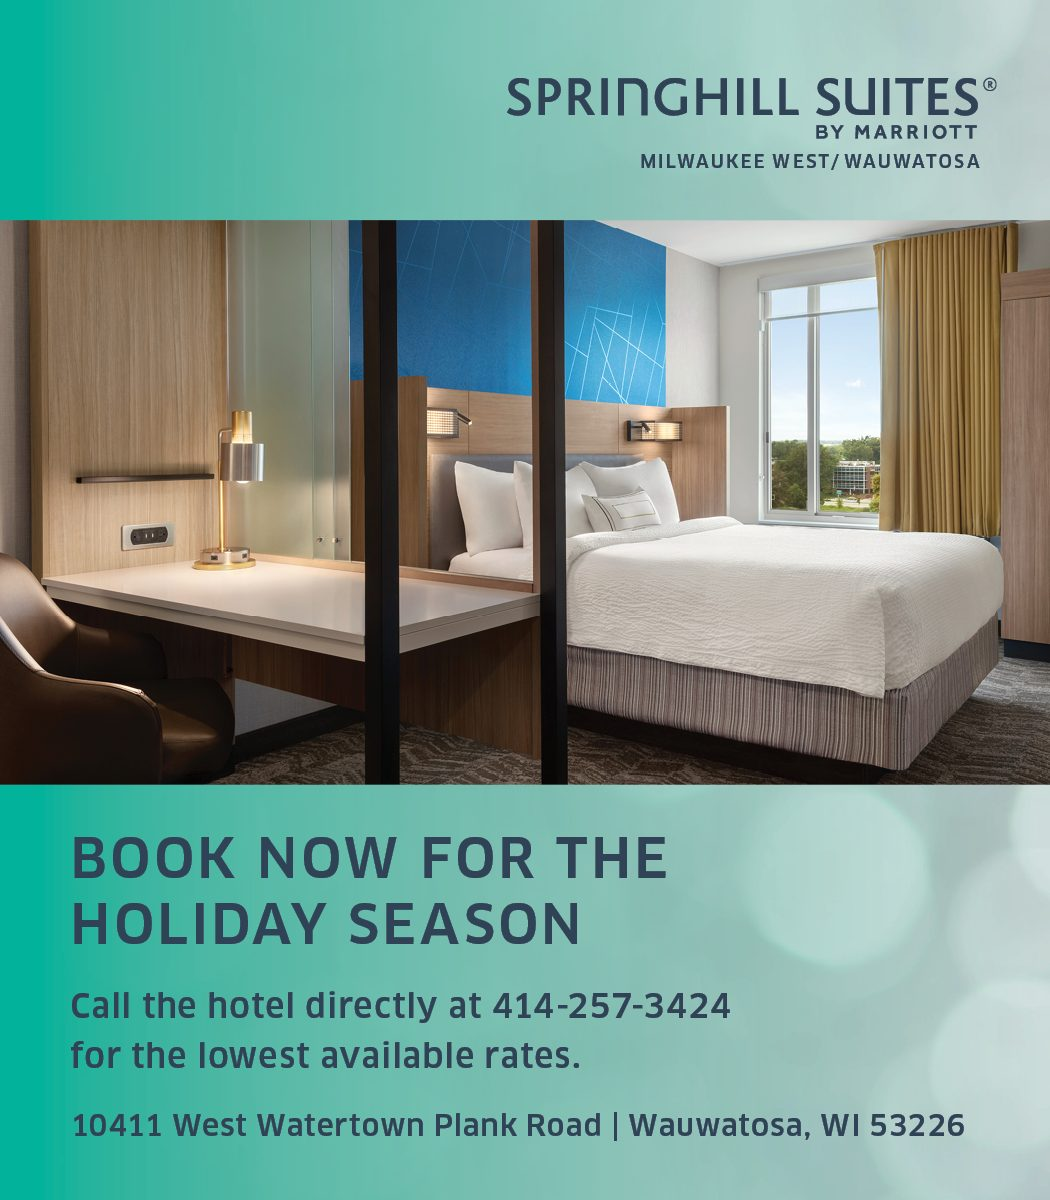 SpringHill Suites_Milwaukee West Wauwatosa_Holday Ad_3.5x4_2020